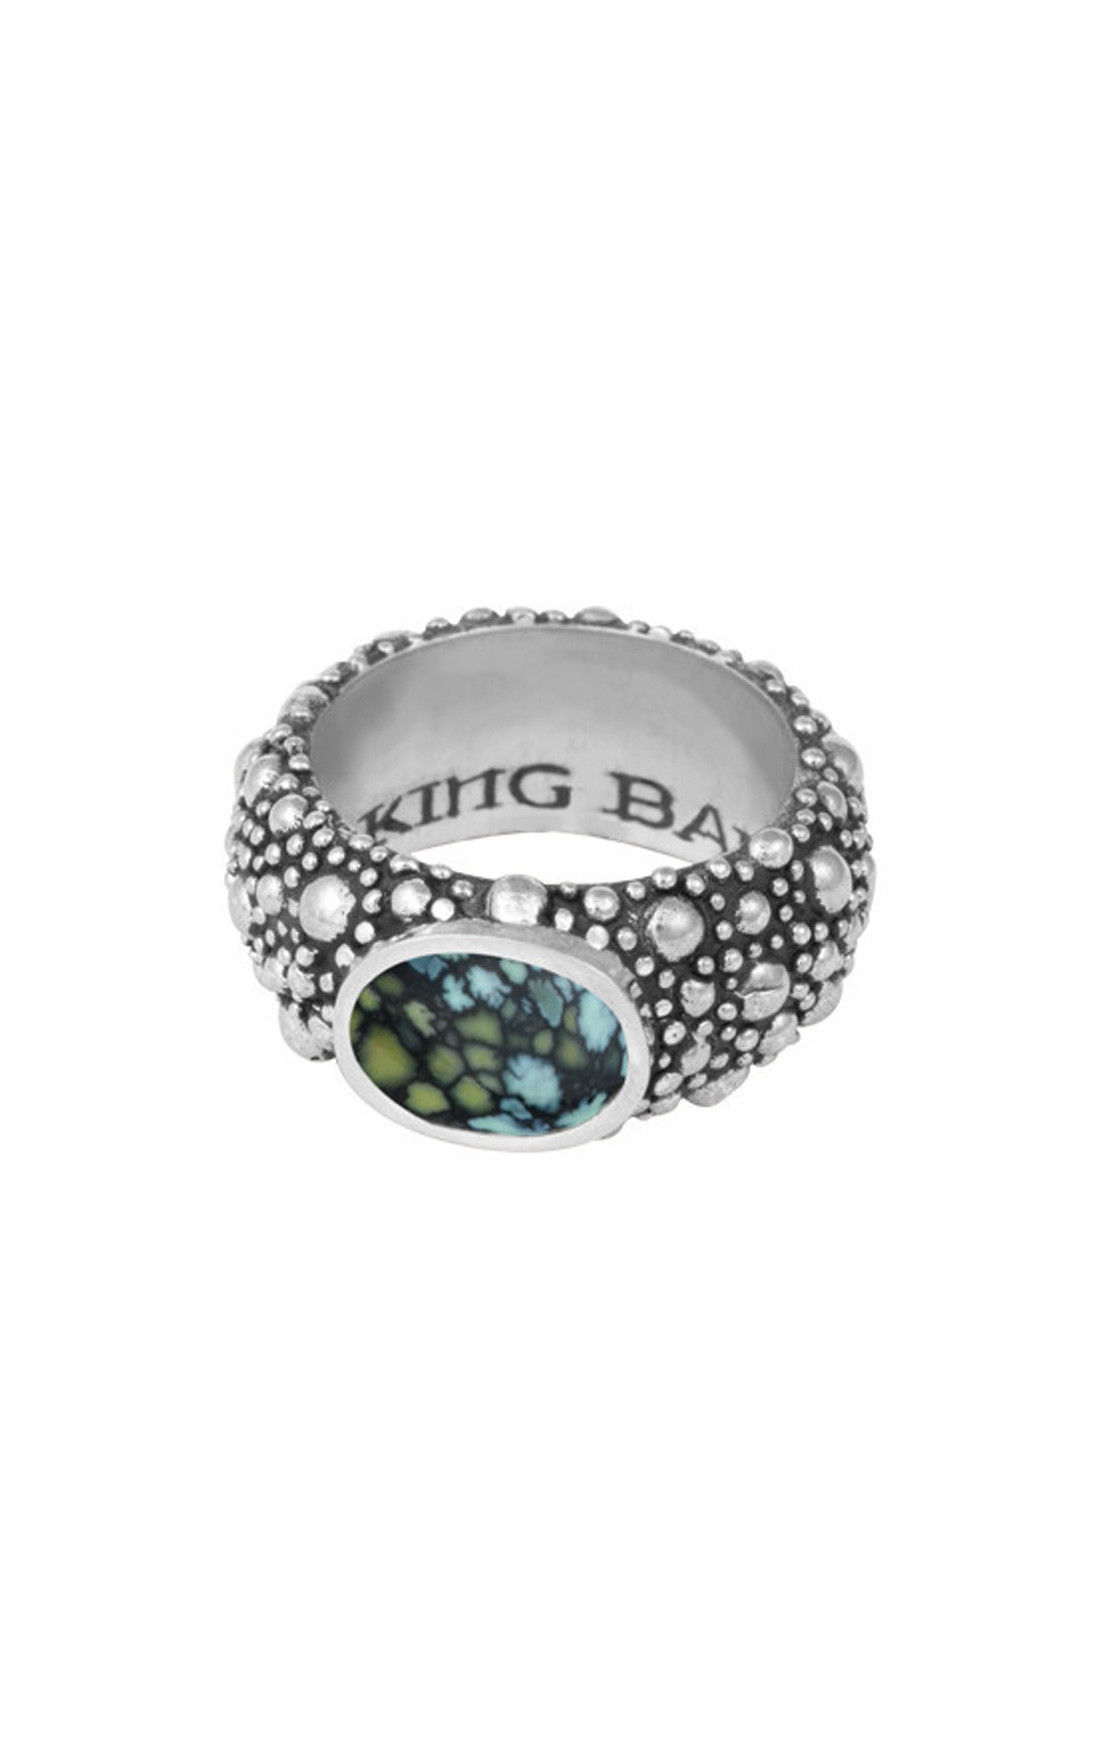 King Baby - Stingray Texture Ring with Top Hat Spotted Turquoise  (K20-5875)